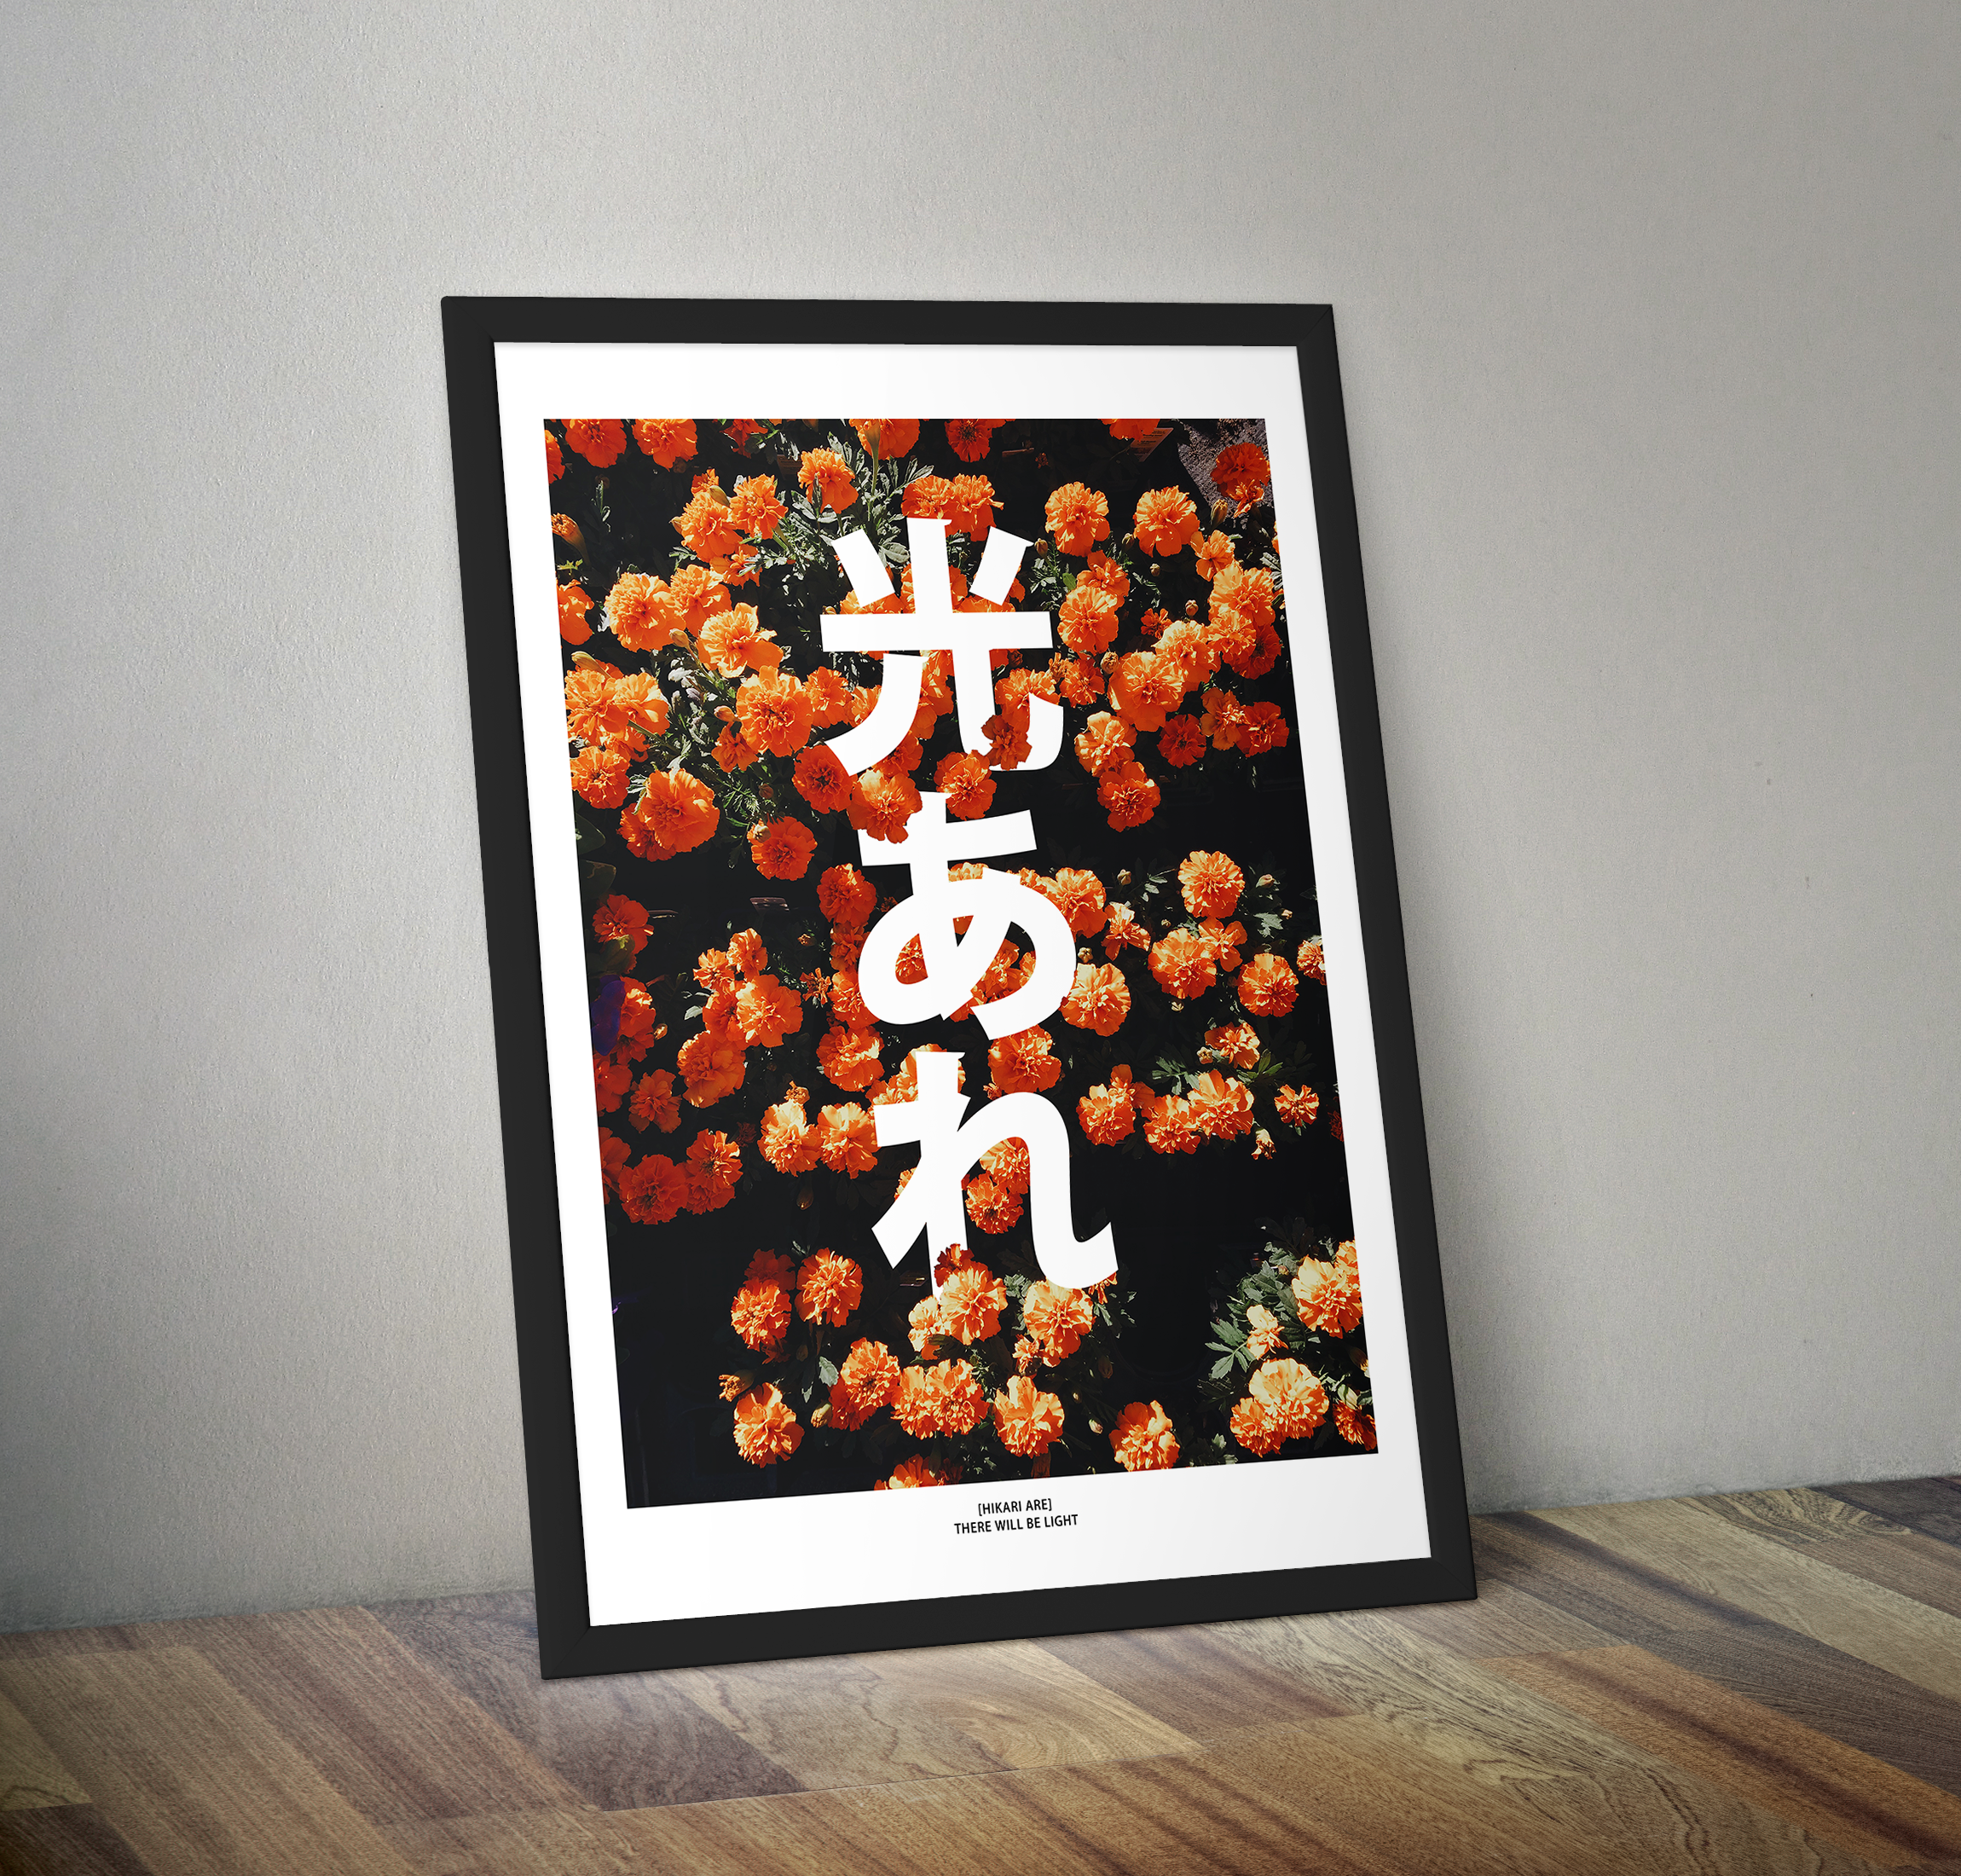 A framed poster rests against a wall. The poster depicts orange flowers partly covering big white Japanese characters that spell out the words Hikari are.